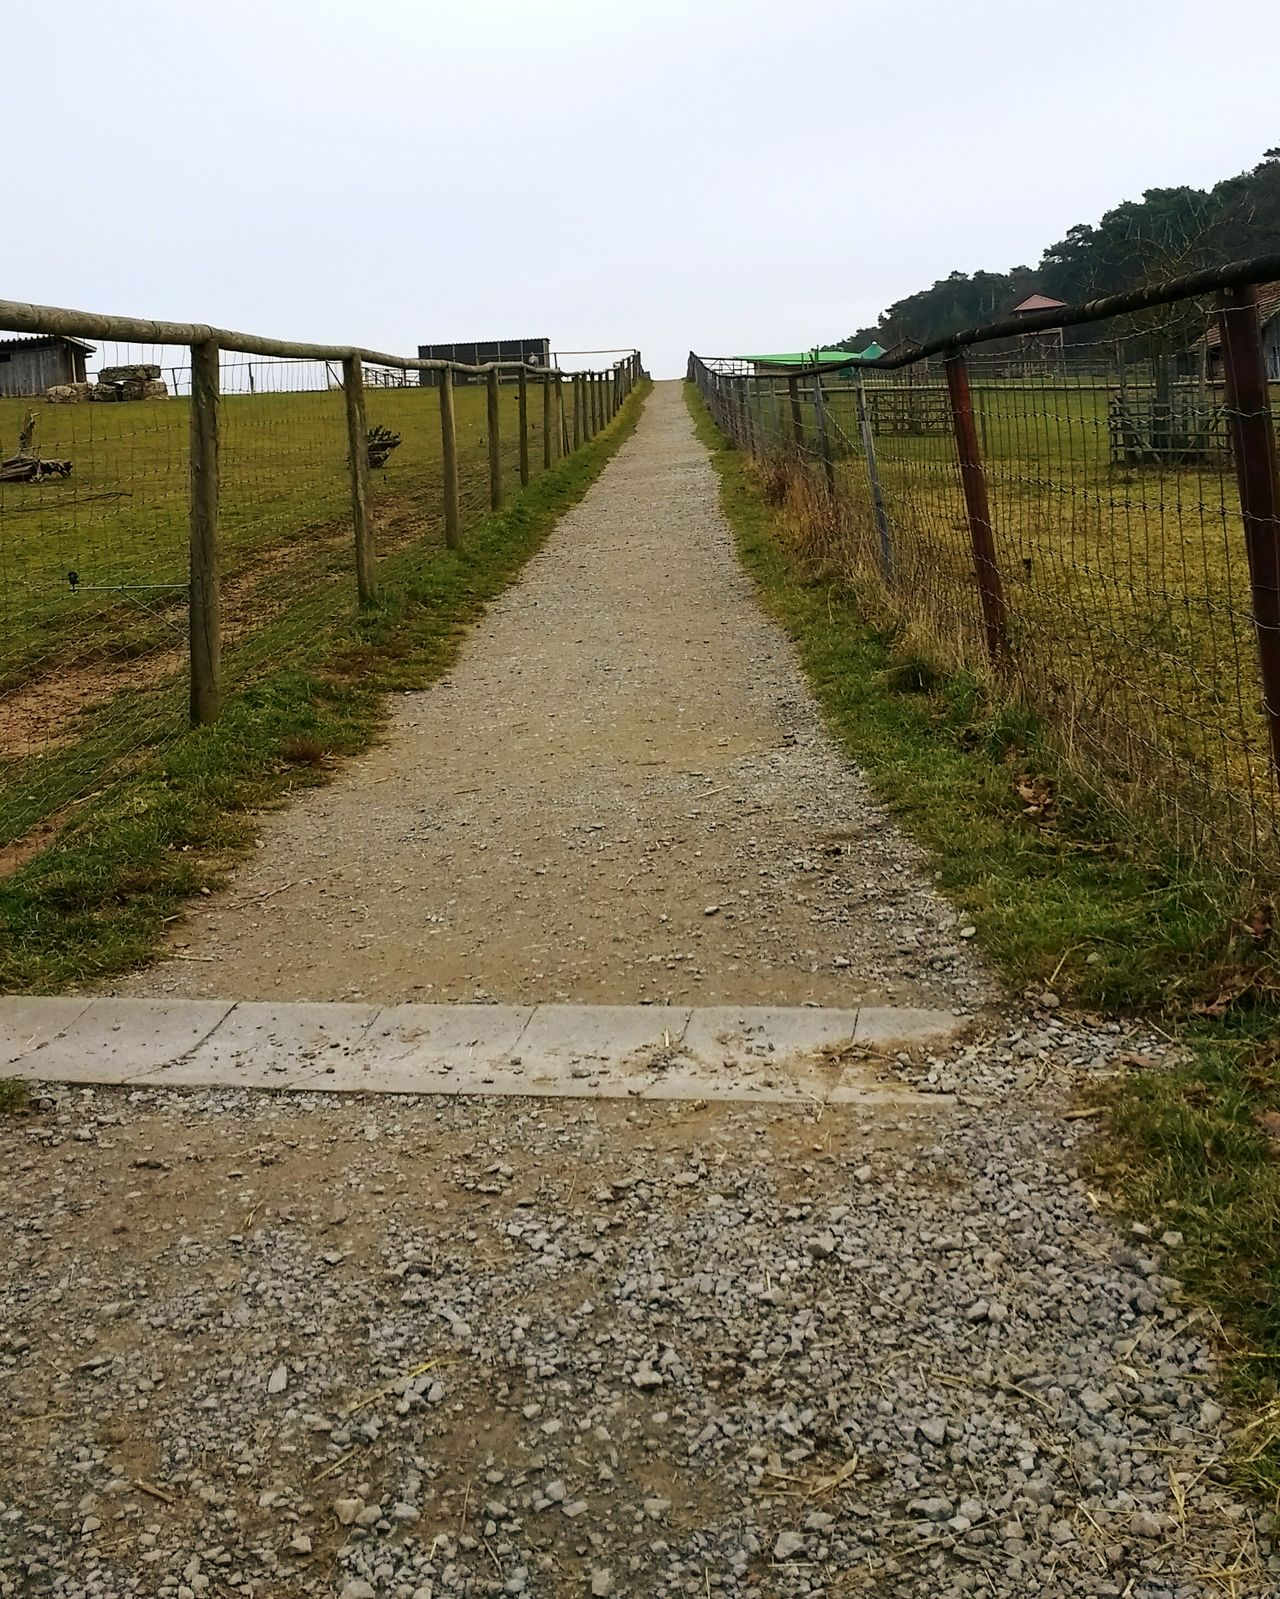 Food path Paths Way Walking Growth Nature Agriculture Day No People Outdoors Beauty In Nature